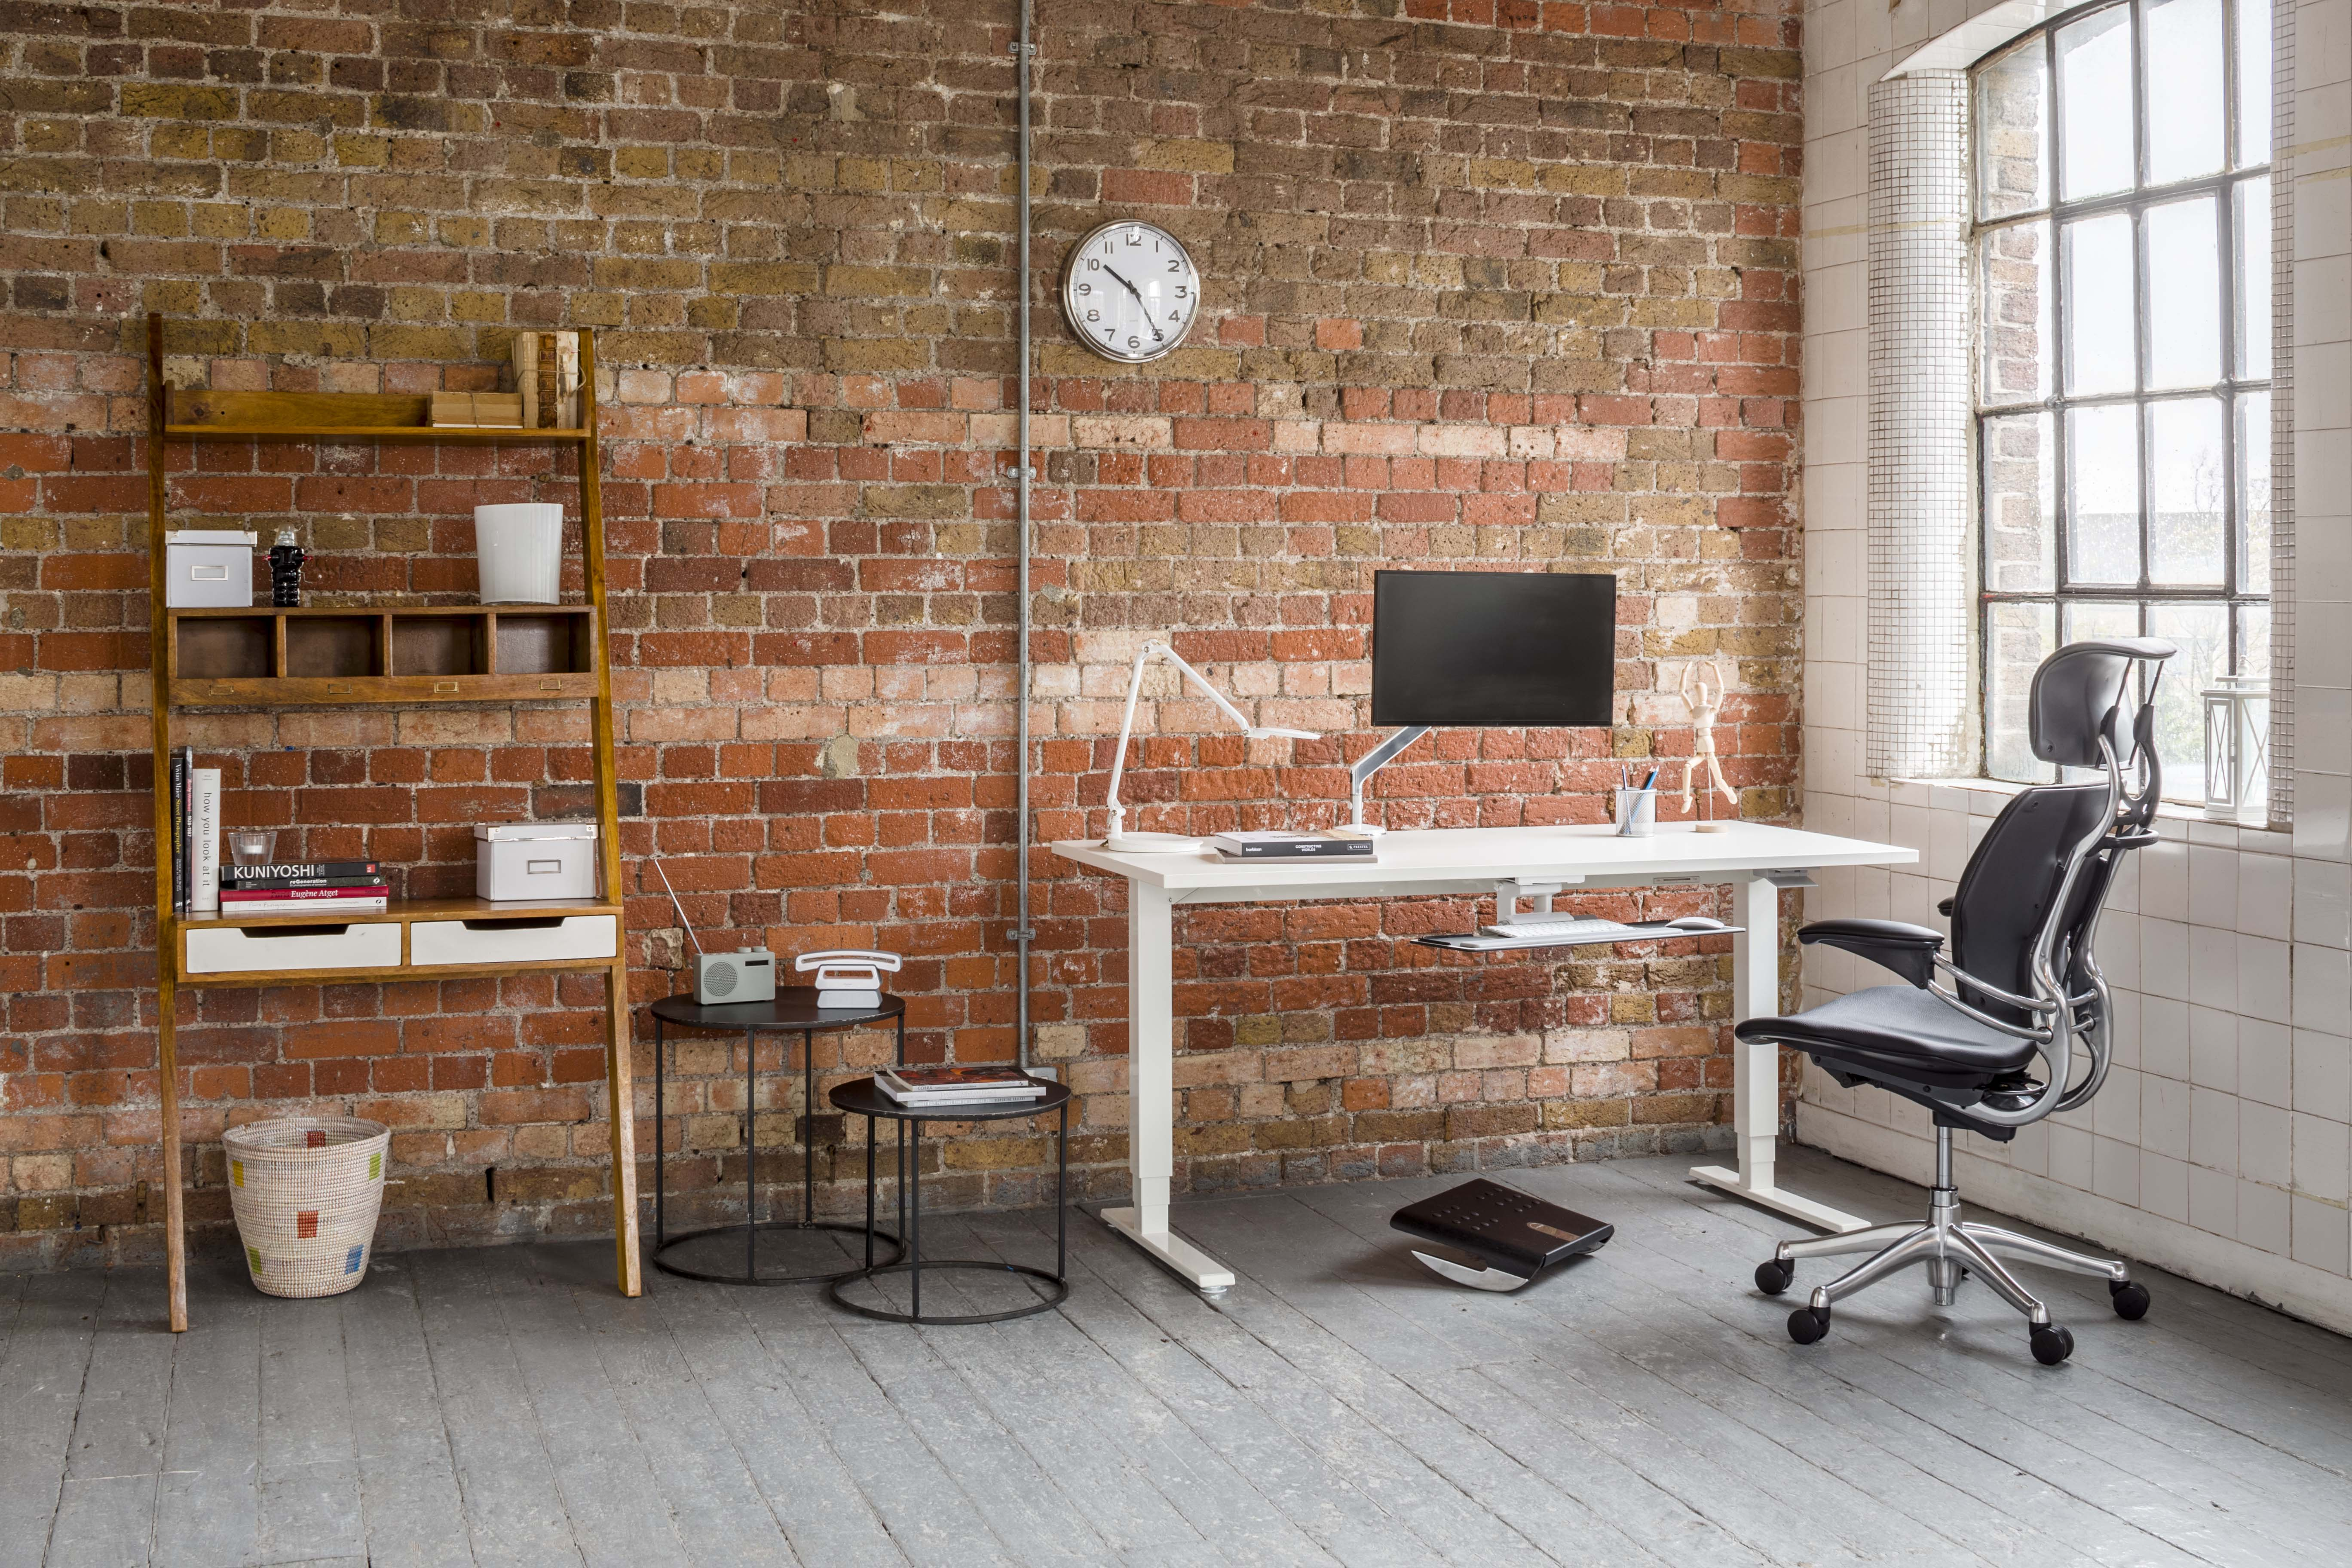 Home Office Essentials You Didn't Know You Needed, Until Now